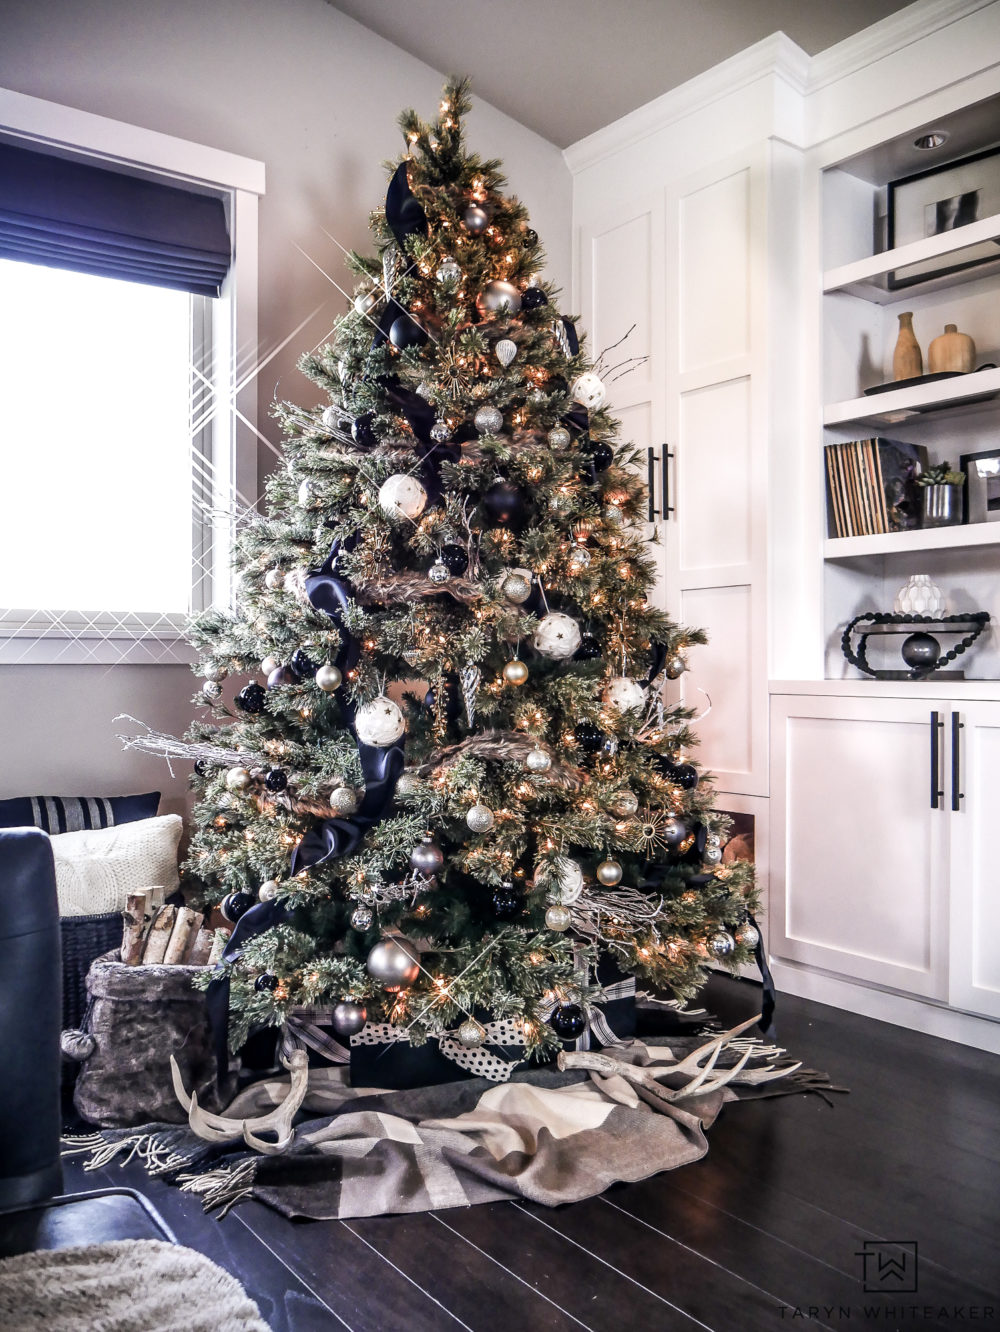 This black and gold Christmas tree is so chic and cozy. Love all the texture and natural elements incorporated into the tree!